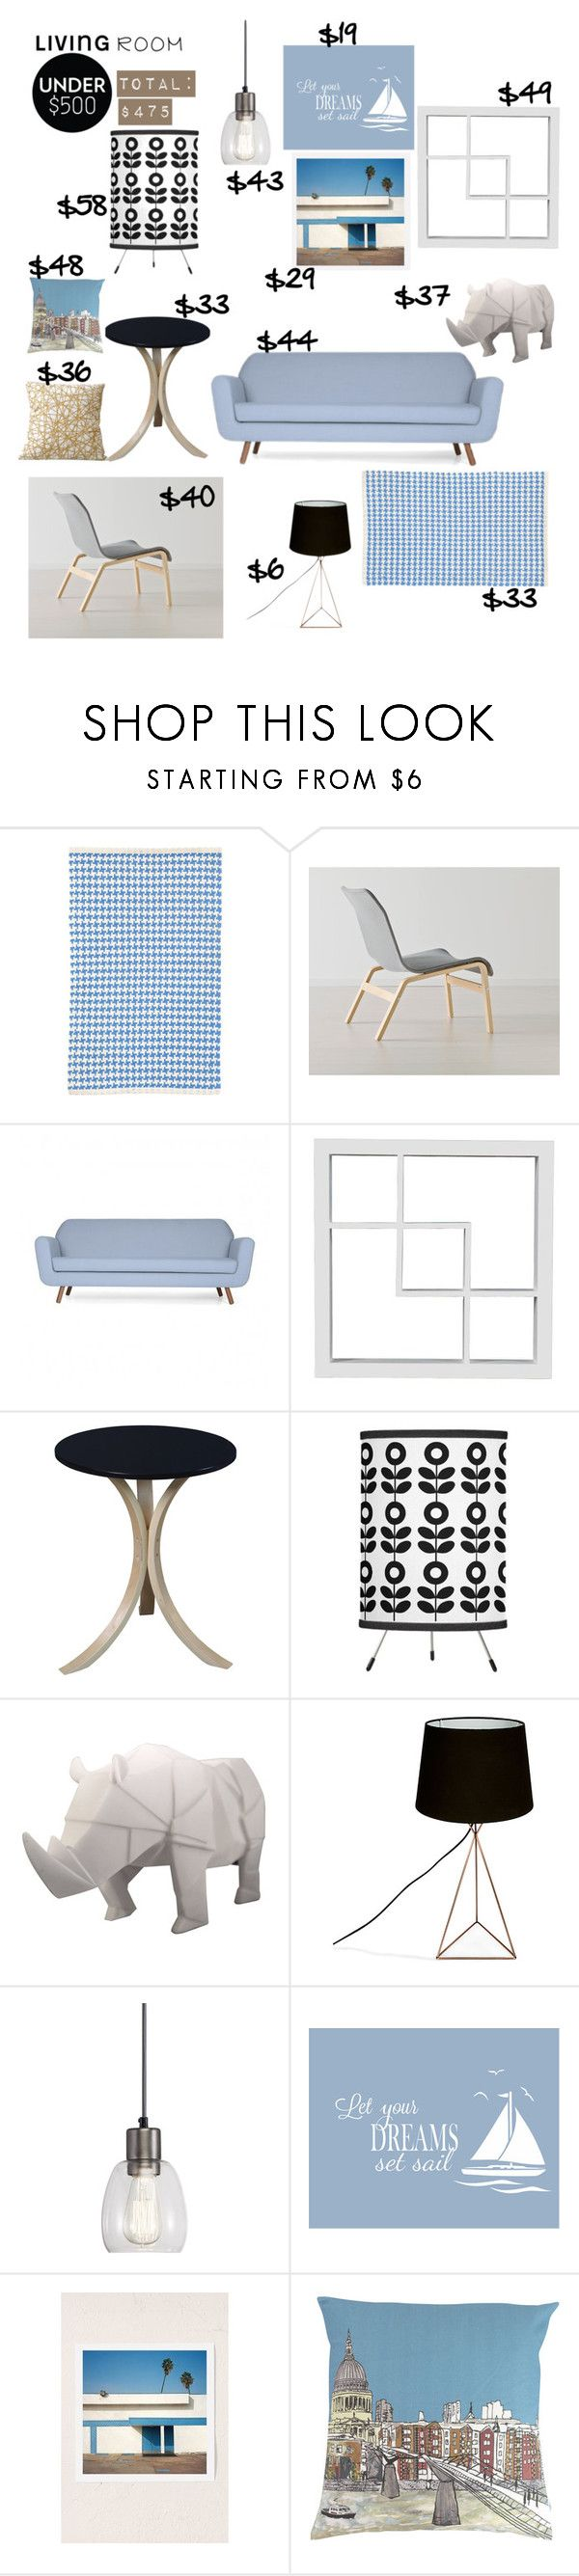 Living Room under $500: Scandinavian Flair by taci42 on Polyvore featuring interior, interiors, interior design, home, home decor, interior decorating, Regency Seating, Disaster Designs, Aztec Lighting and Dash & Albert